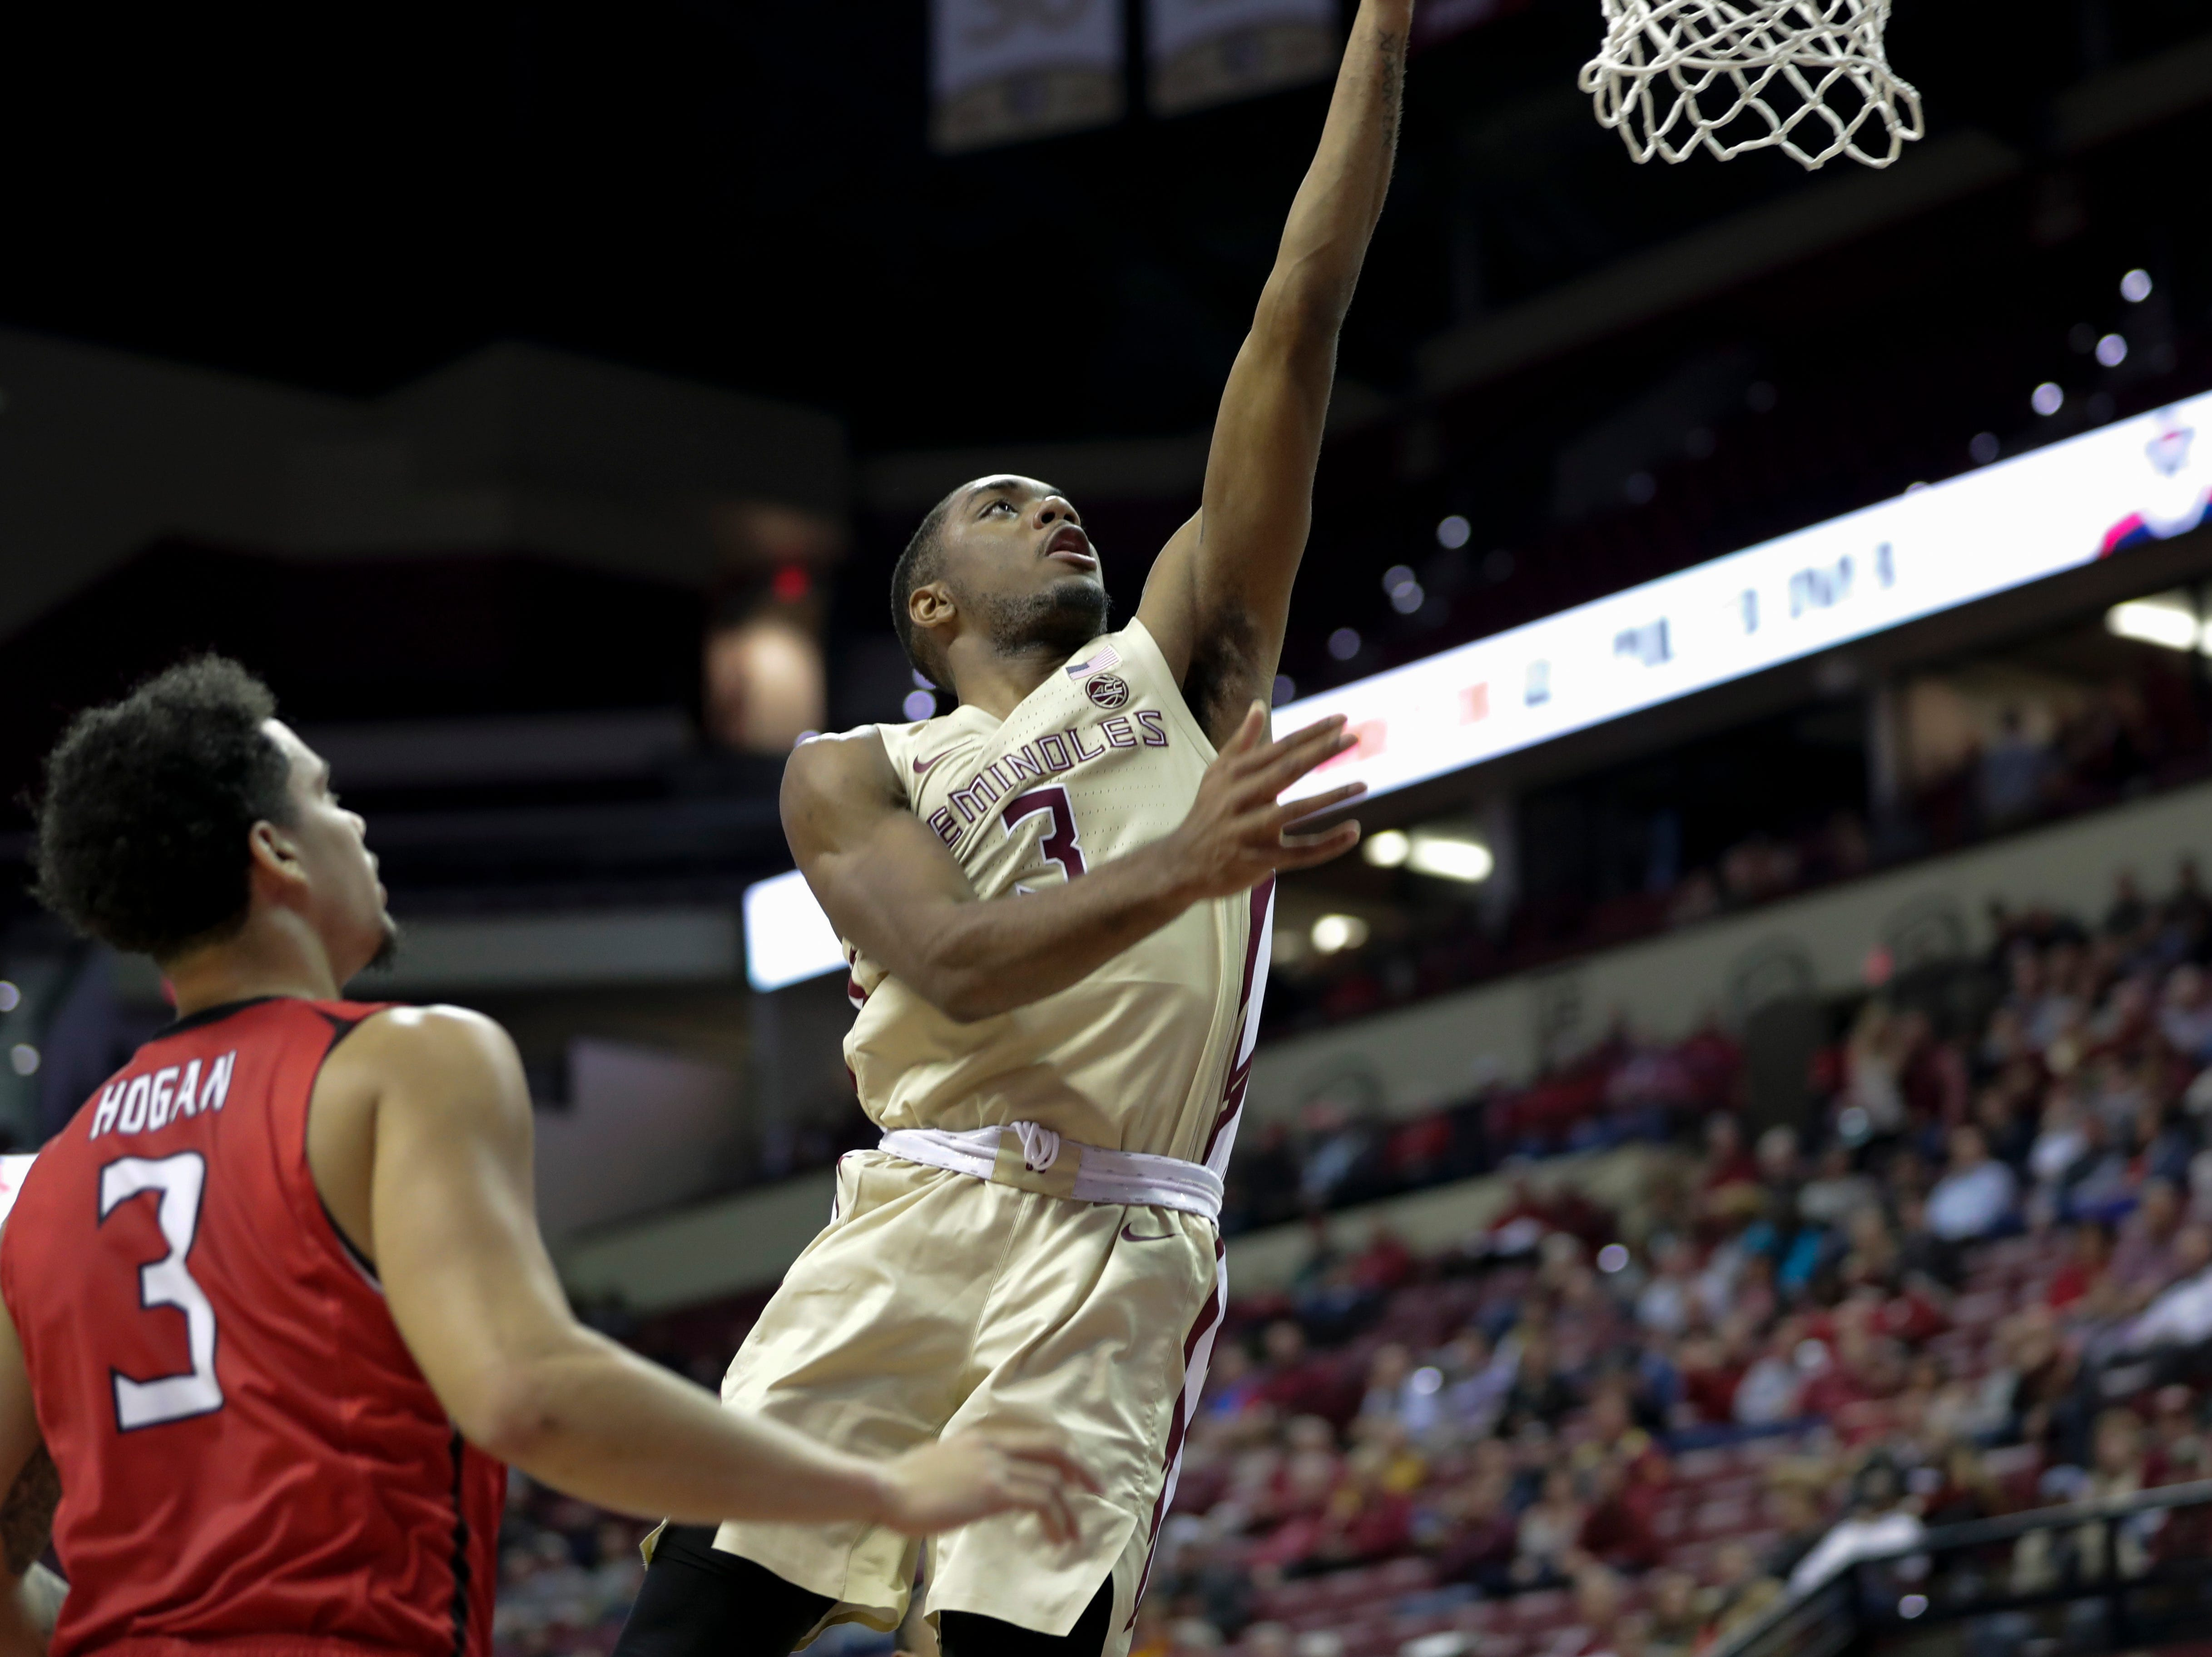 Florida State Seminoles guard Trent Forrest (3) puts up a shot during a game between Florida State University and Southeast Missouri State University at the Donald L. Tucker Civic Center Monday, Dec. 17, 2018.